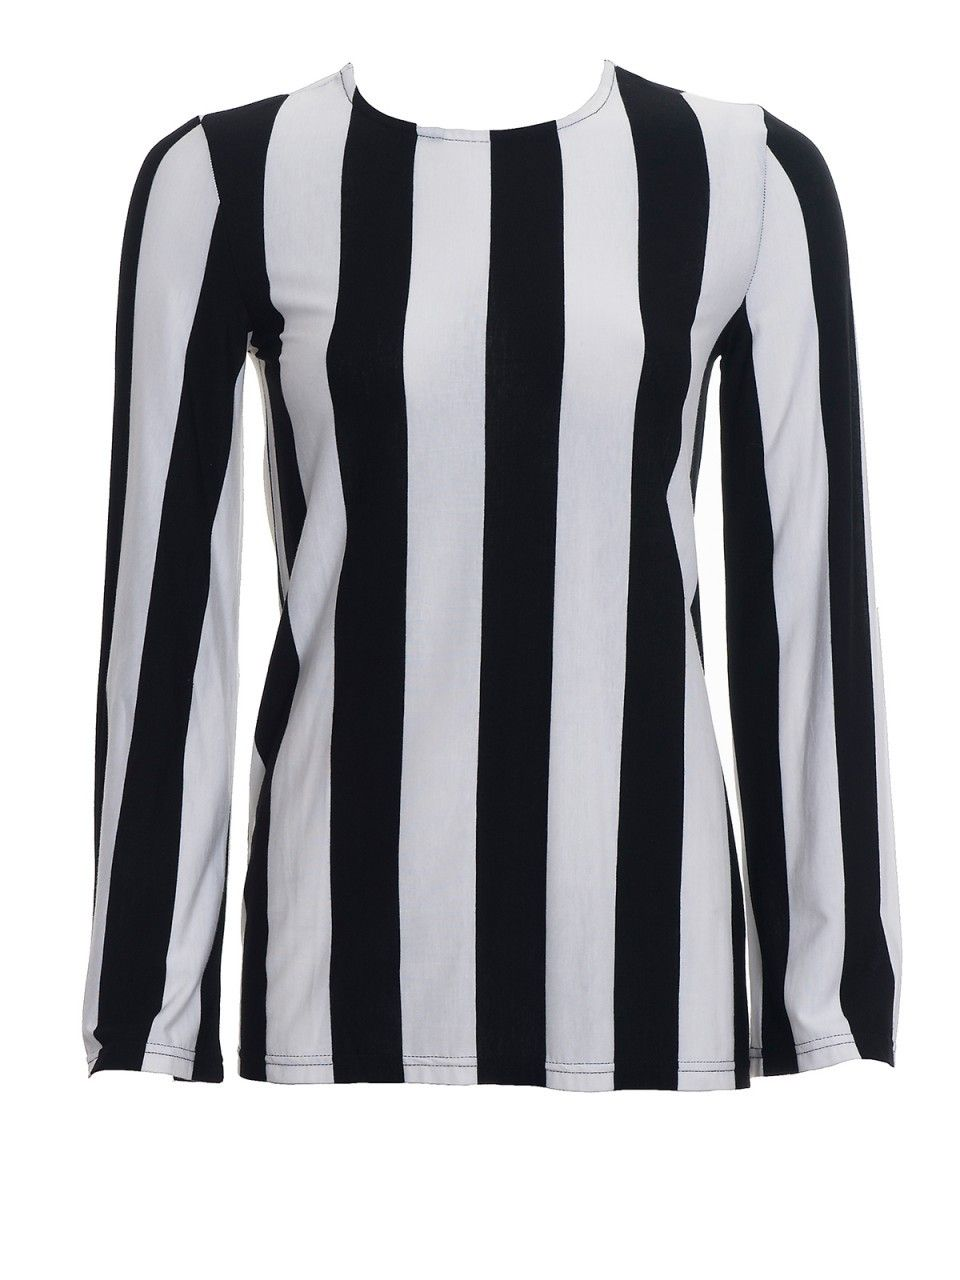 Charlie Brown - S/S 13: 'Jail Bait' Top, $149.00 (http://shop.charliebrown.com.au/jail-bait-top/)